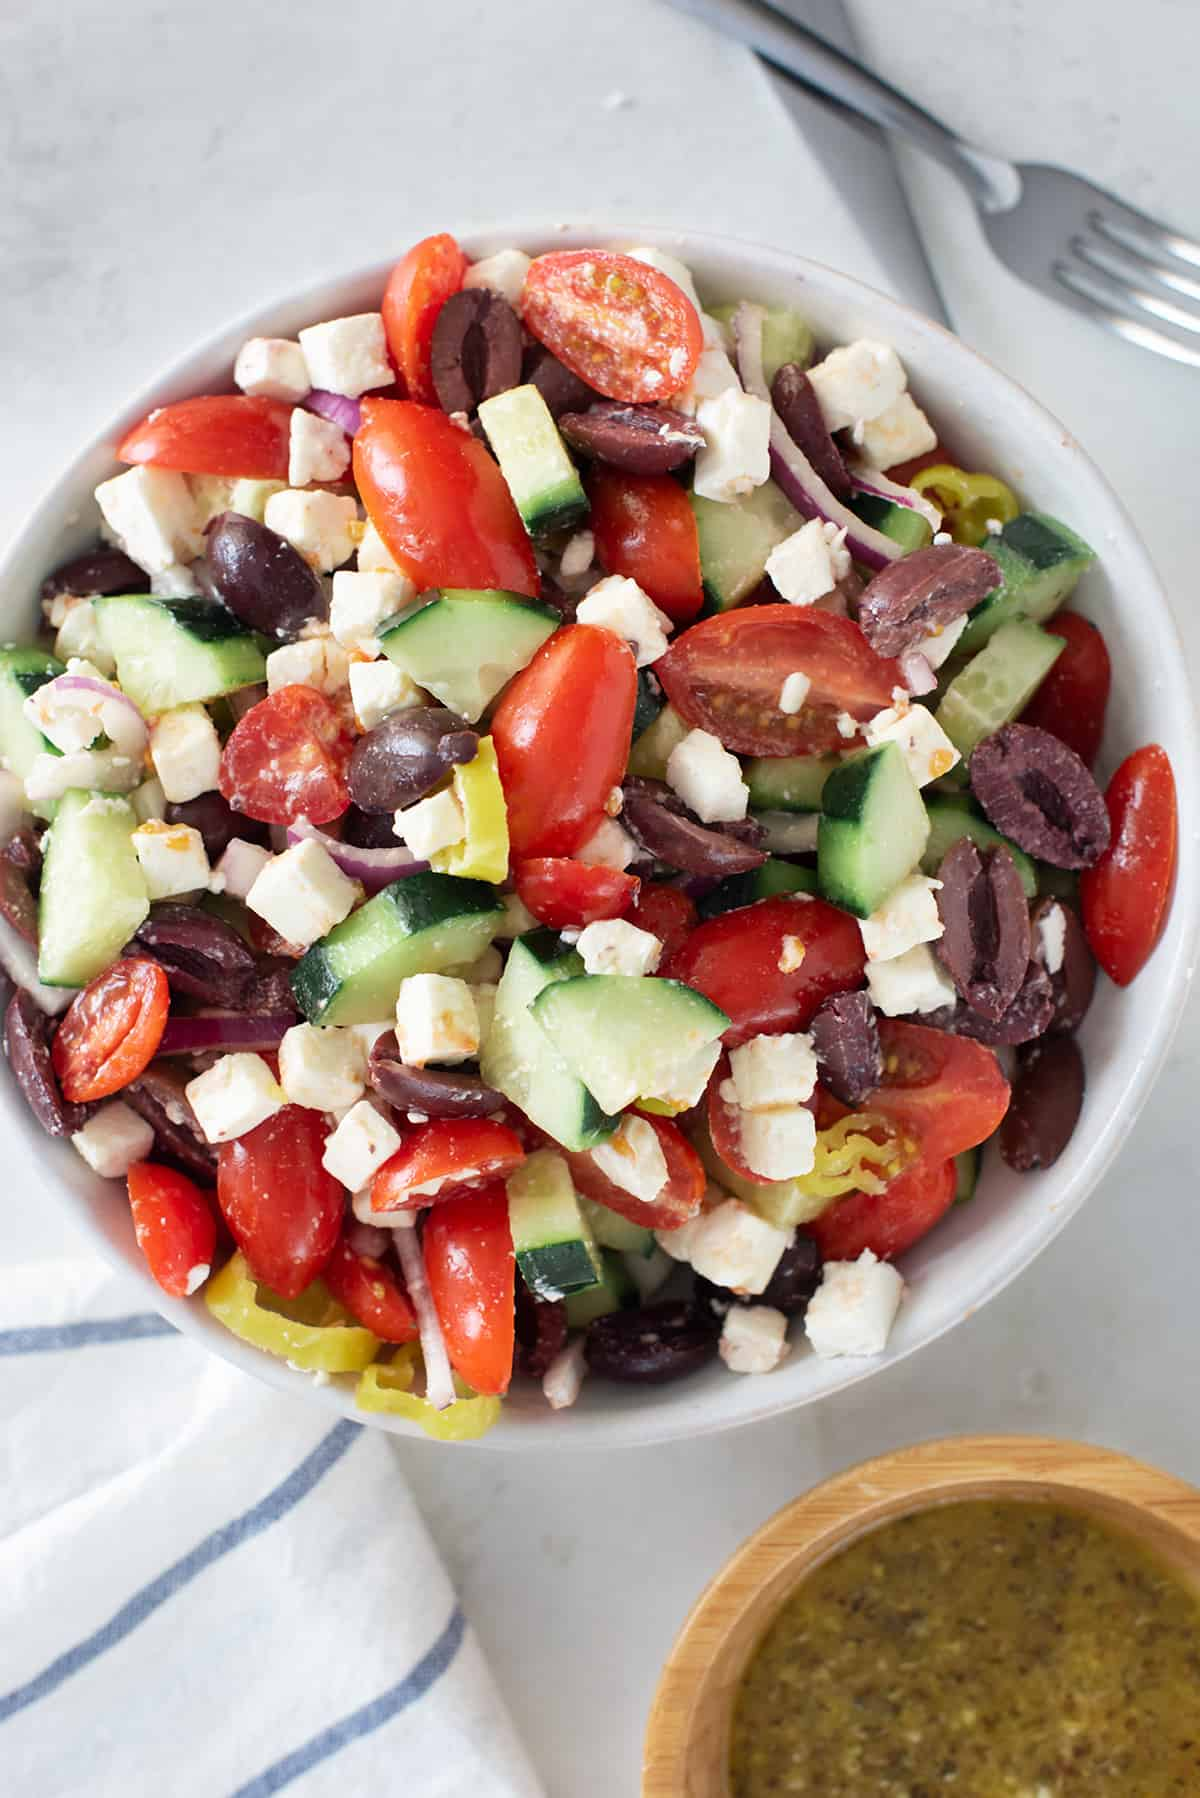 Greek salad filled with lettuce, kalamata olives, tomatoes, red onion, cucumbers, feta cheese, and croutons in large white bowl next to glass bottle of vinaigrette.